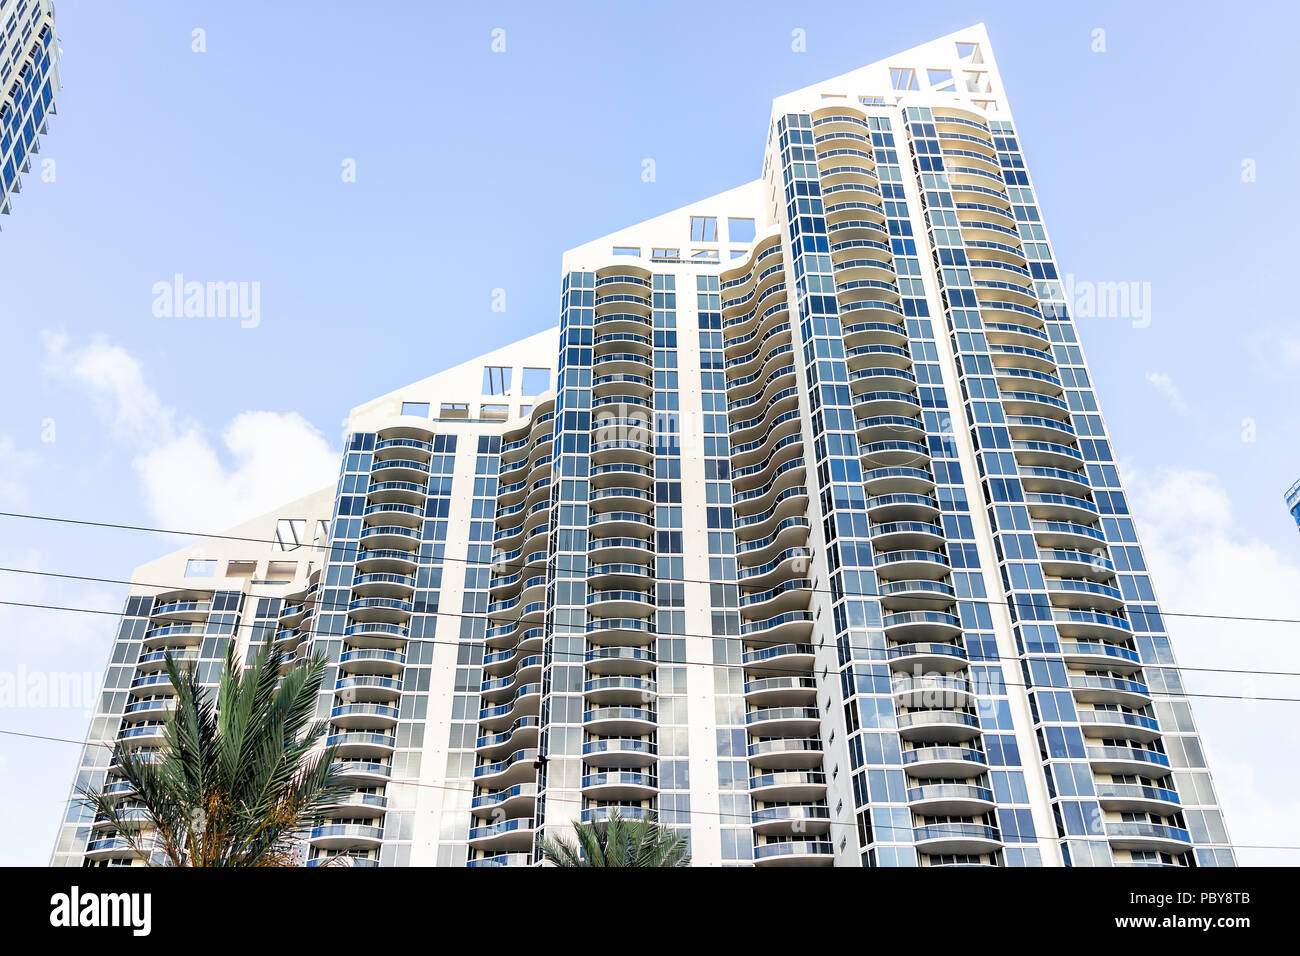 Sunny Isles Beach, USA - May 4, 2018: Apartment condo Pinnacle building balconies during sunny day in Miami, Florida with skyscraper, nobody perspecti - Stock Image